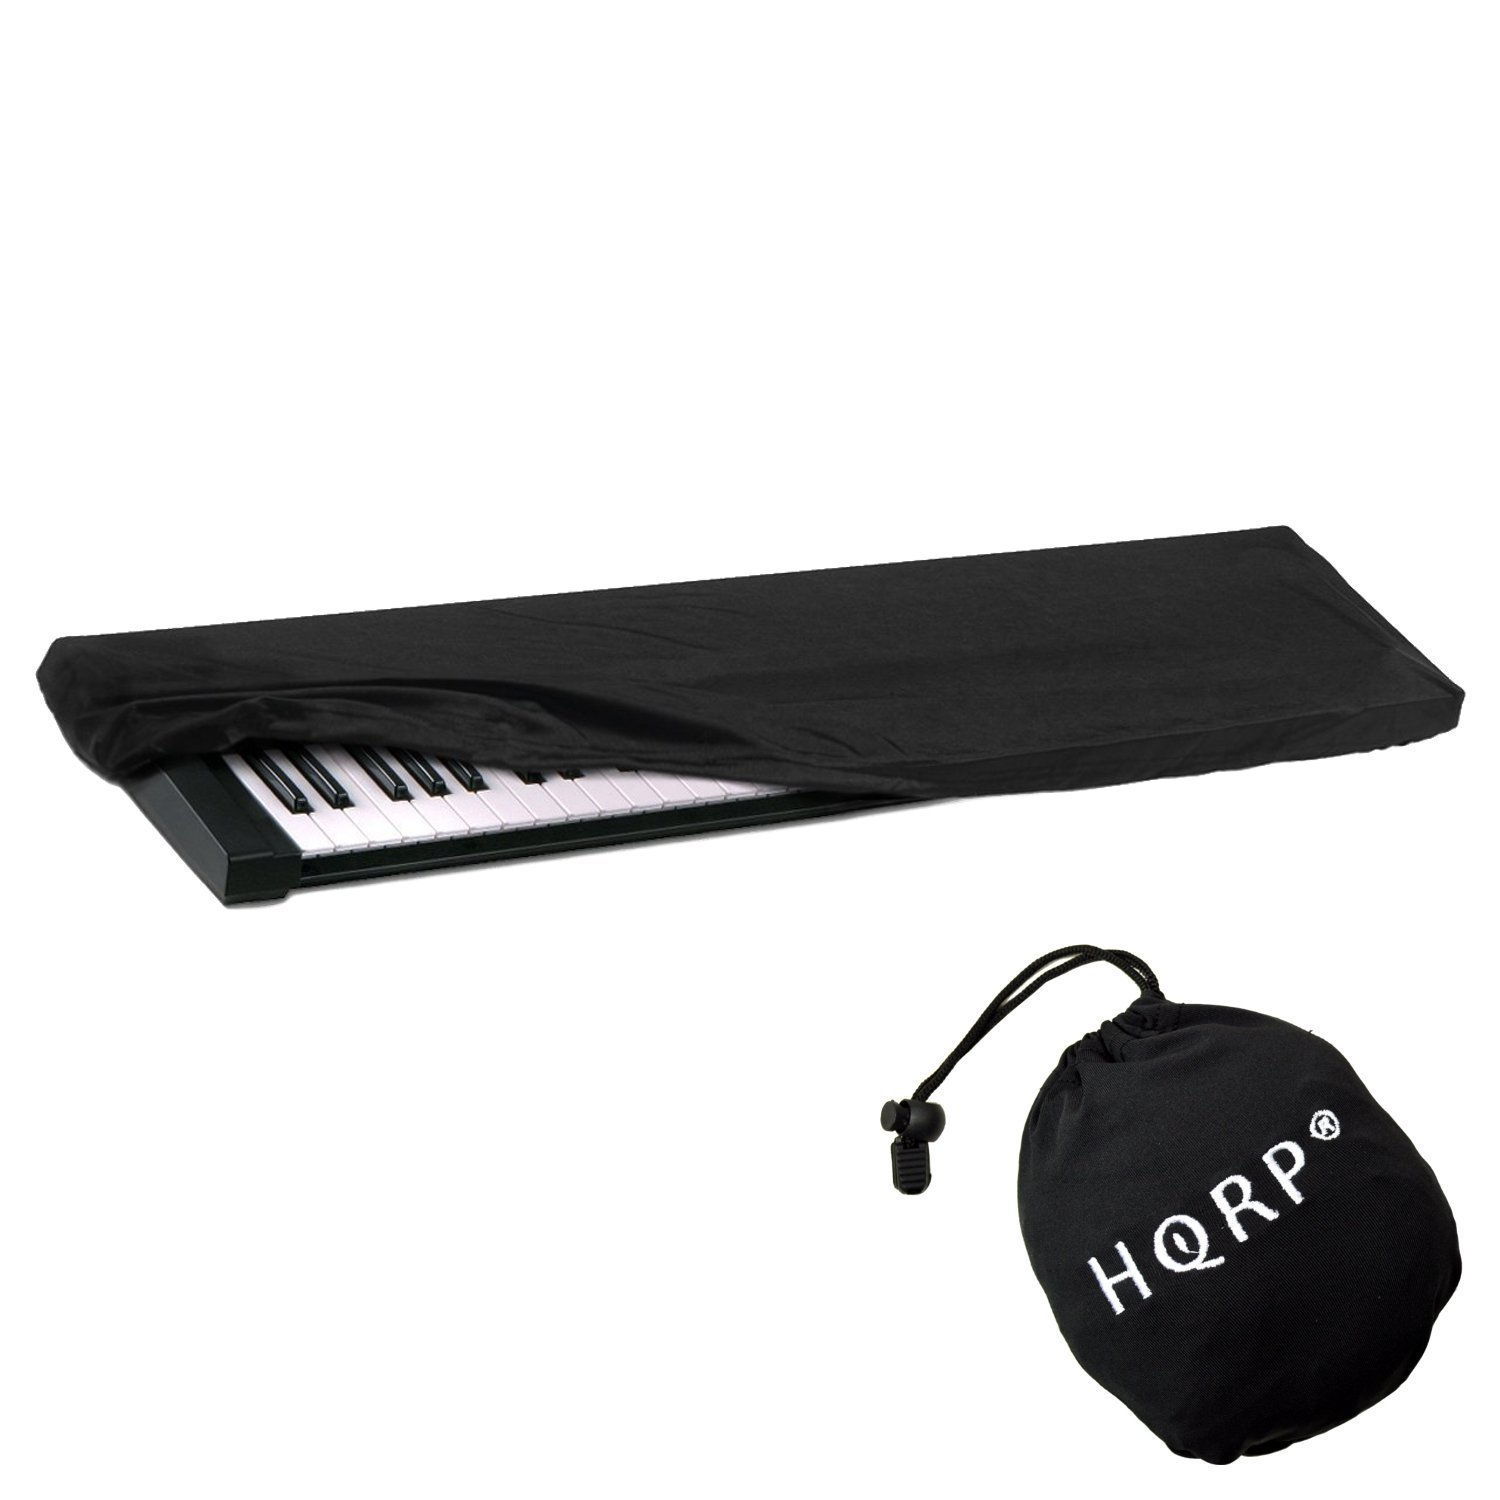 HQRP Elastic Dust Cover w/ Bag for Casio WK-245 / WK245 / WK-6600 / WK6600 / WK-7600 / WK7600 Electronic Keyboard Digital Piano + HQRP Coaster 8877747111515115